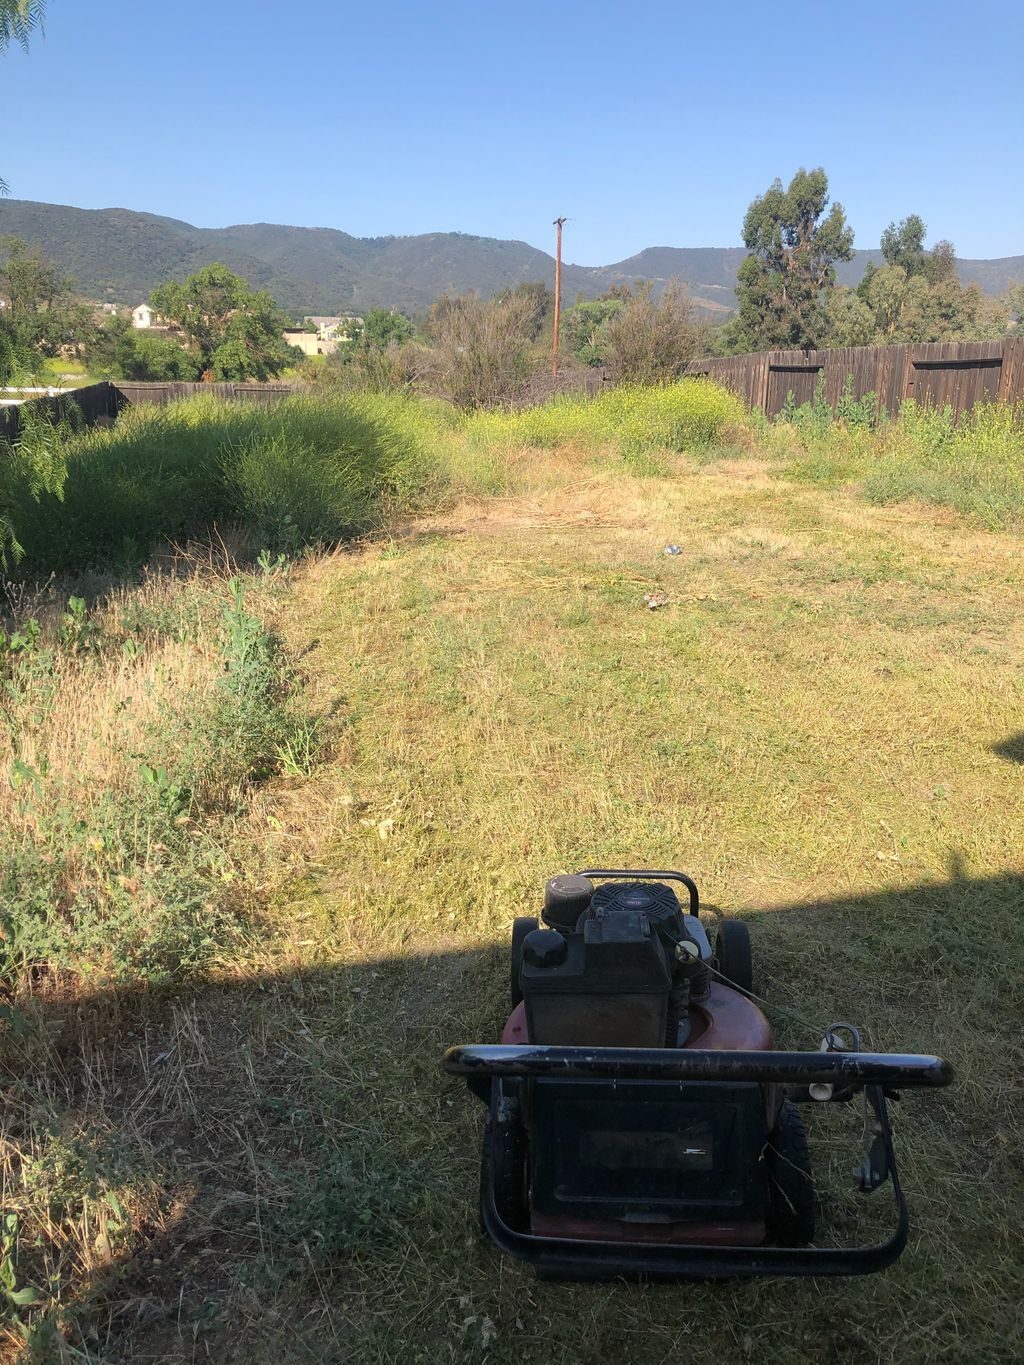 Weed whacking,weed abatement